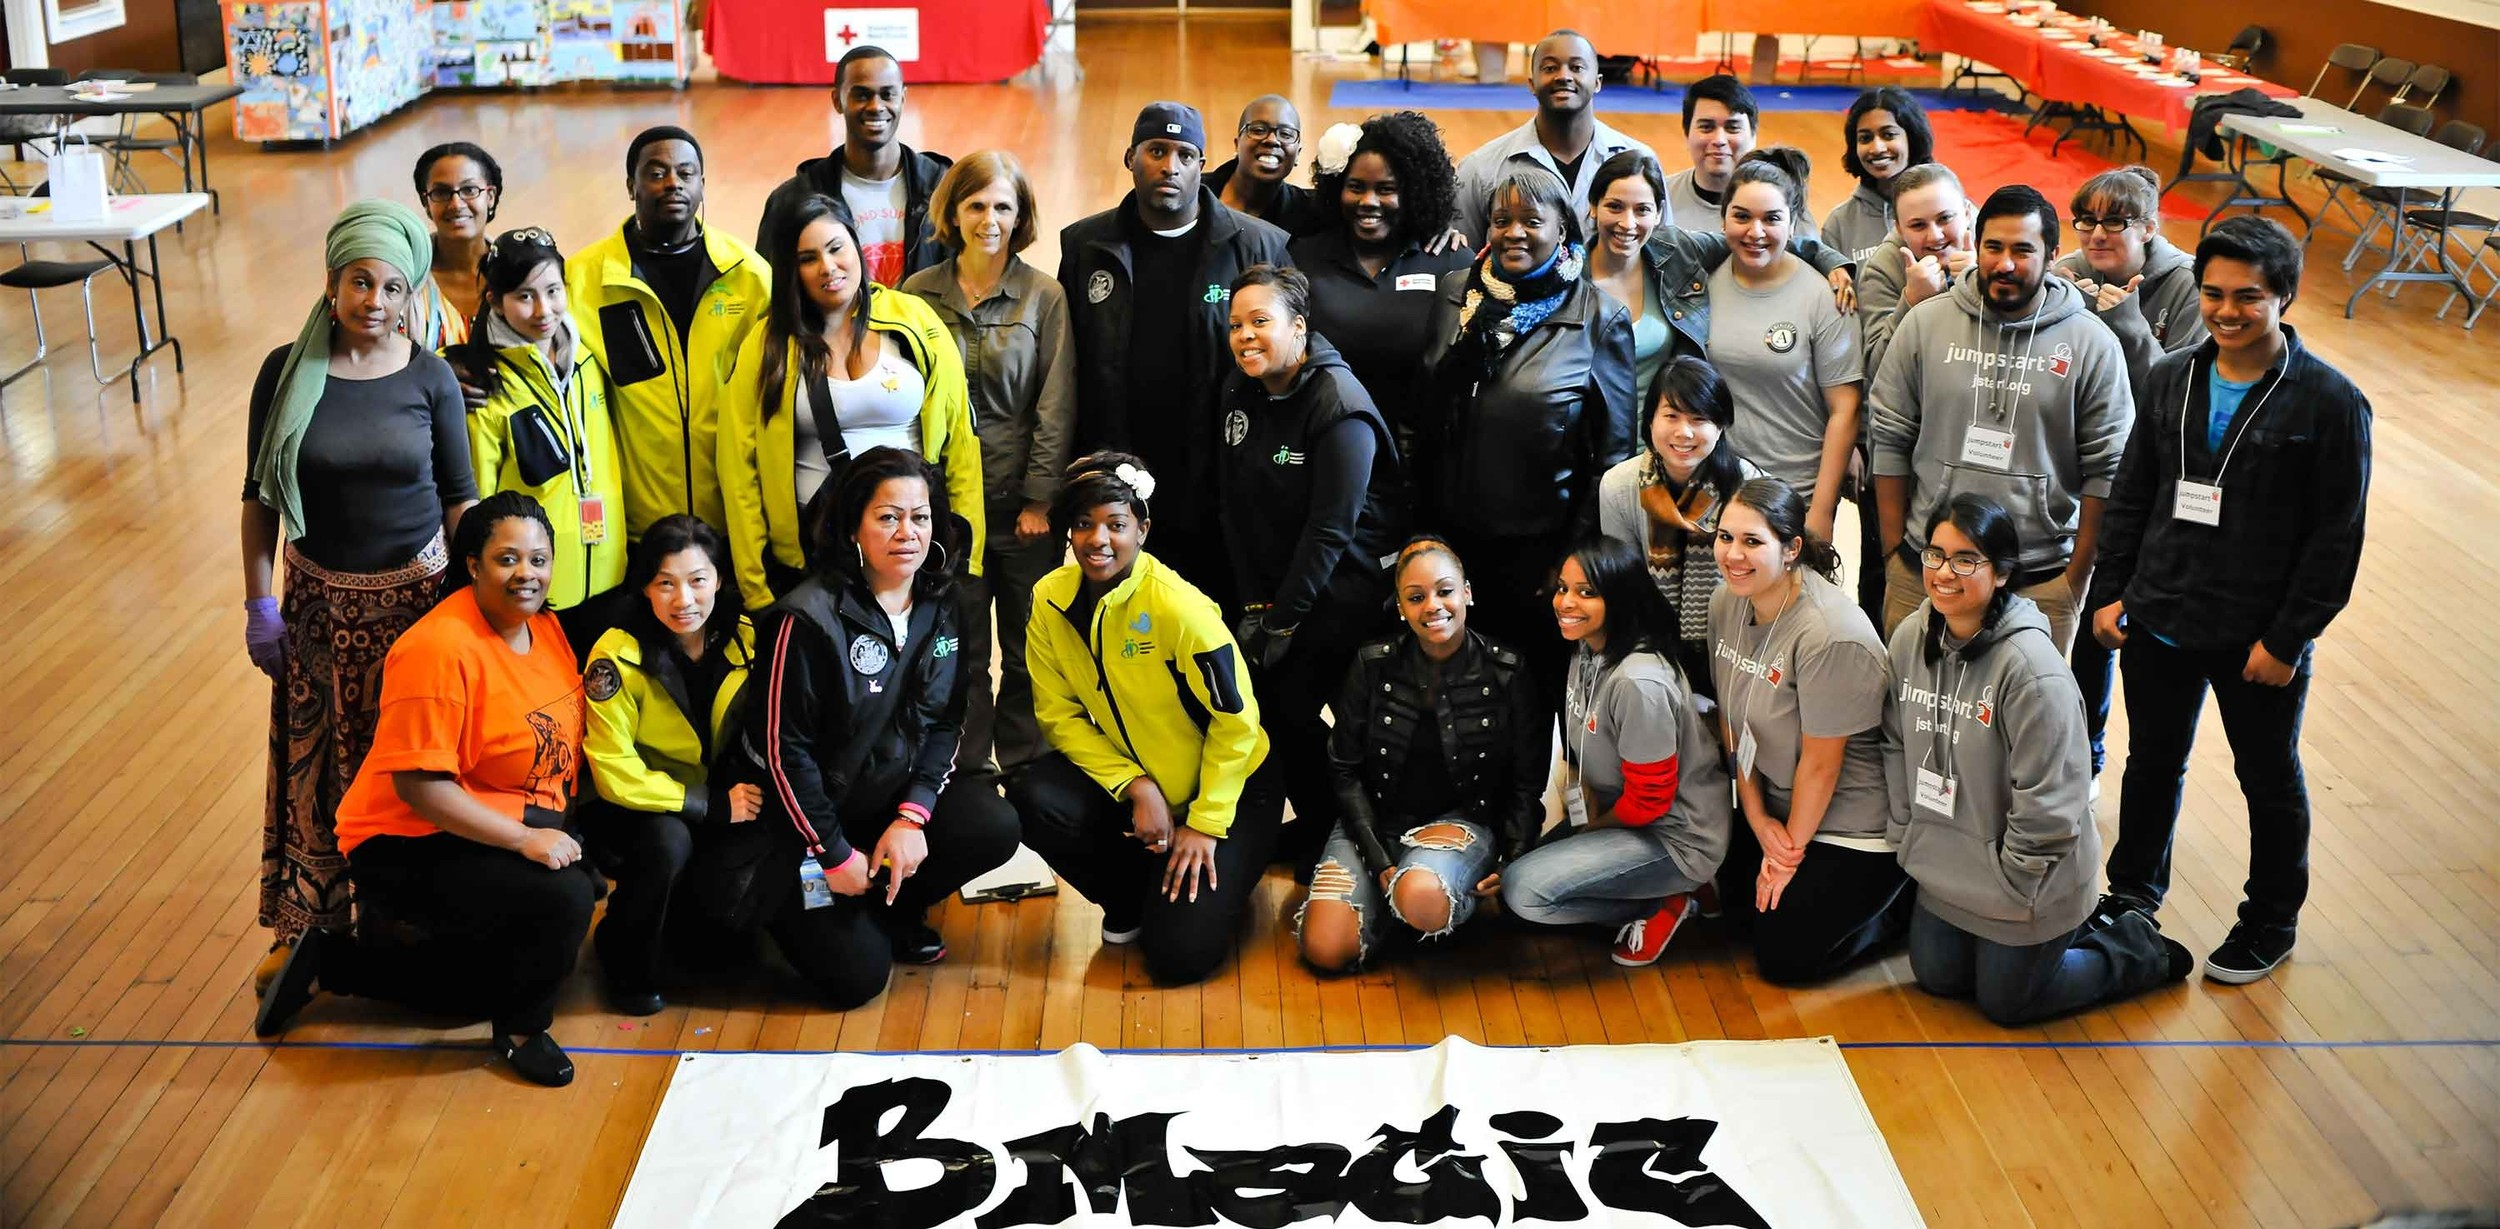 BMagic is a network of neighborhood-based nonprofit organizations that serves kids with art, educational and outdoor experiences.